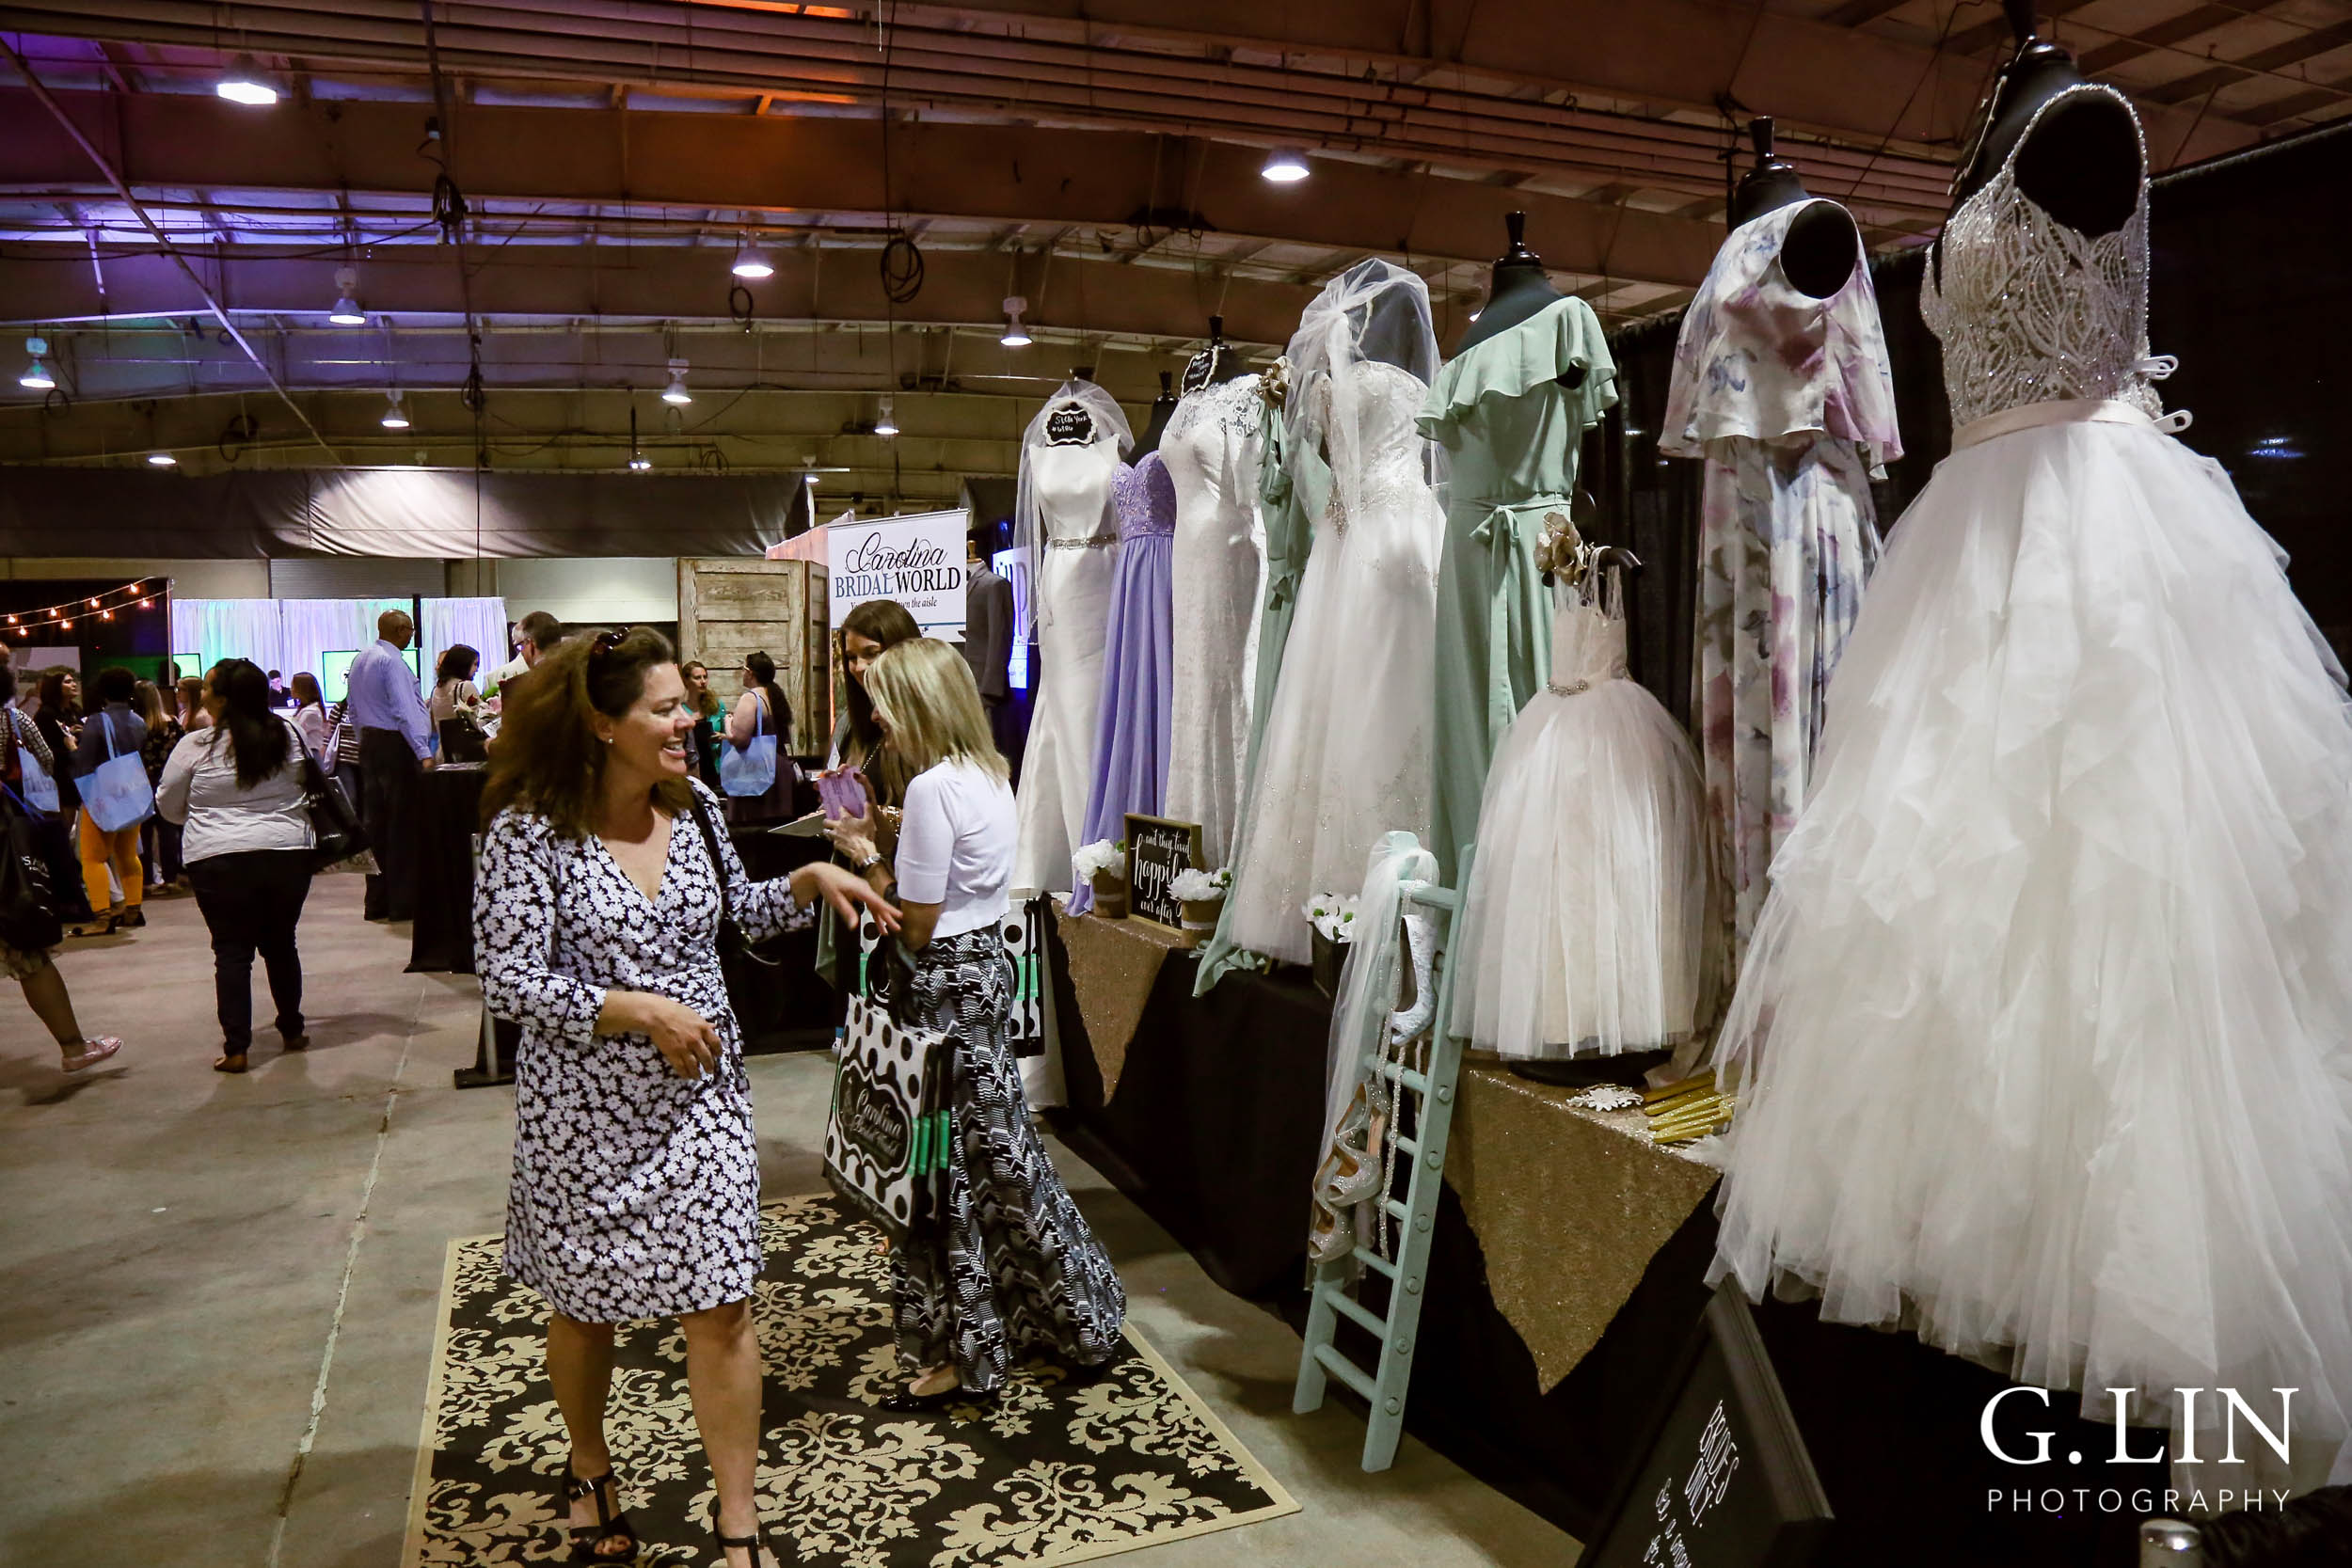 Raleigh Event Photographer | G. Lin Photography | Guest looking at wedding dresses at bridal show